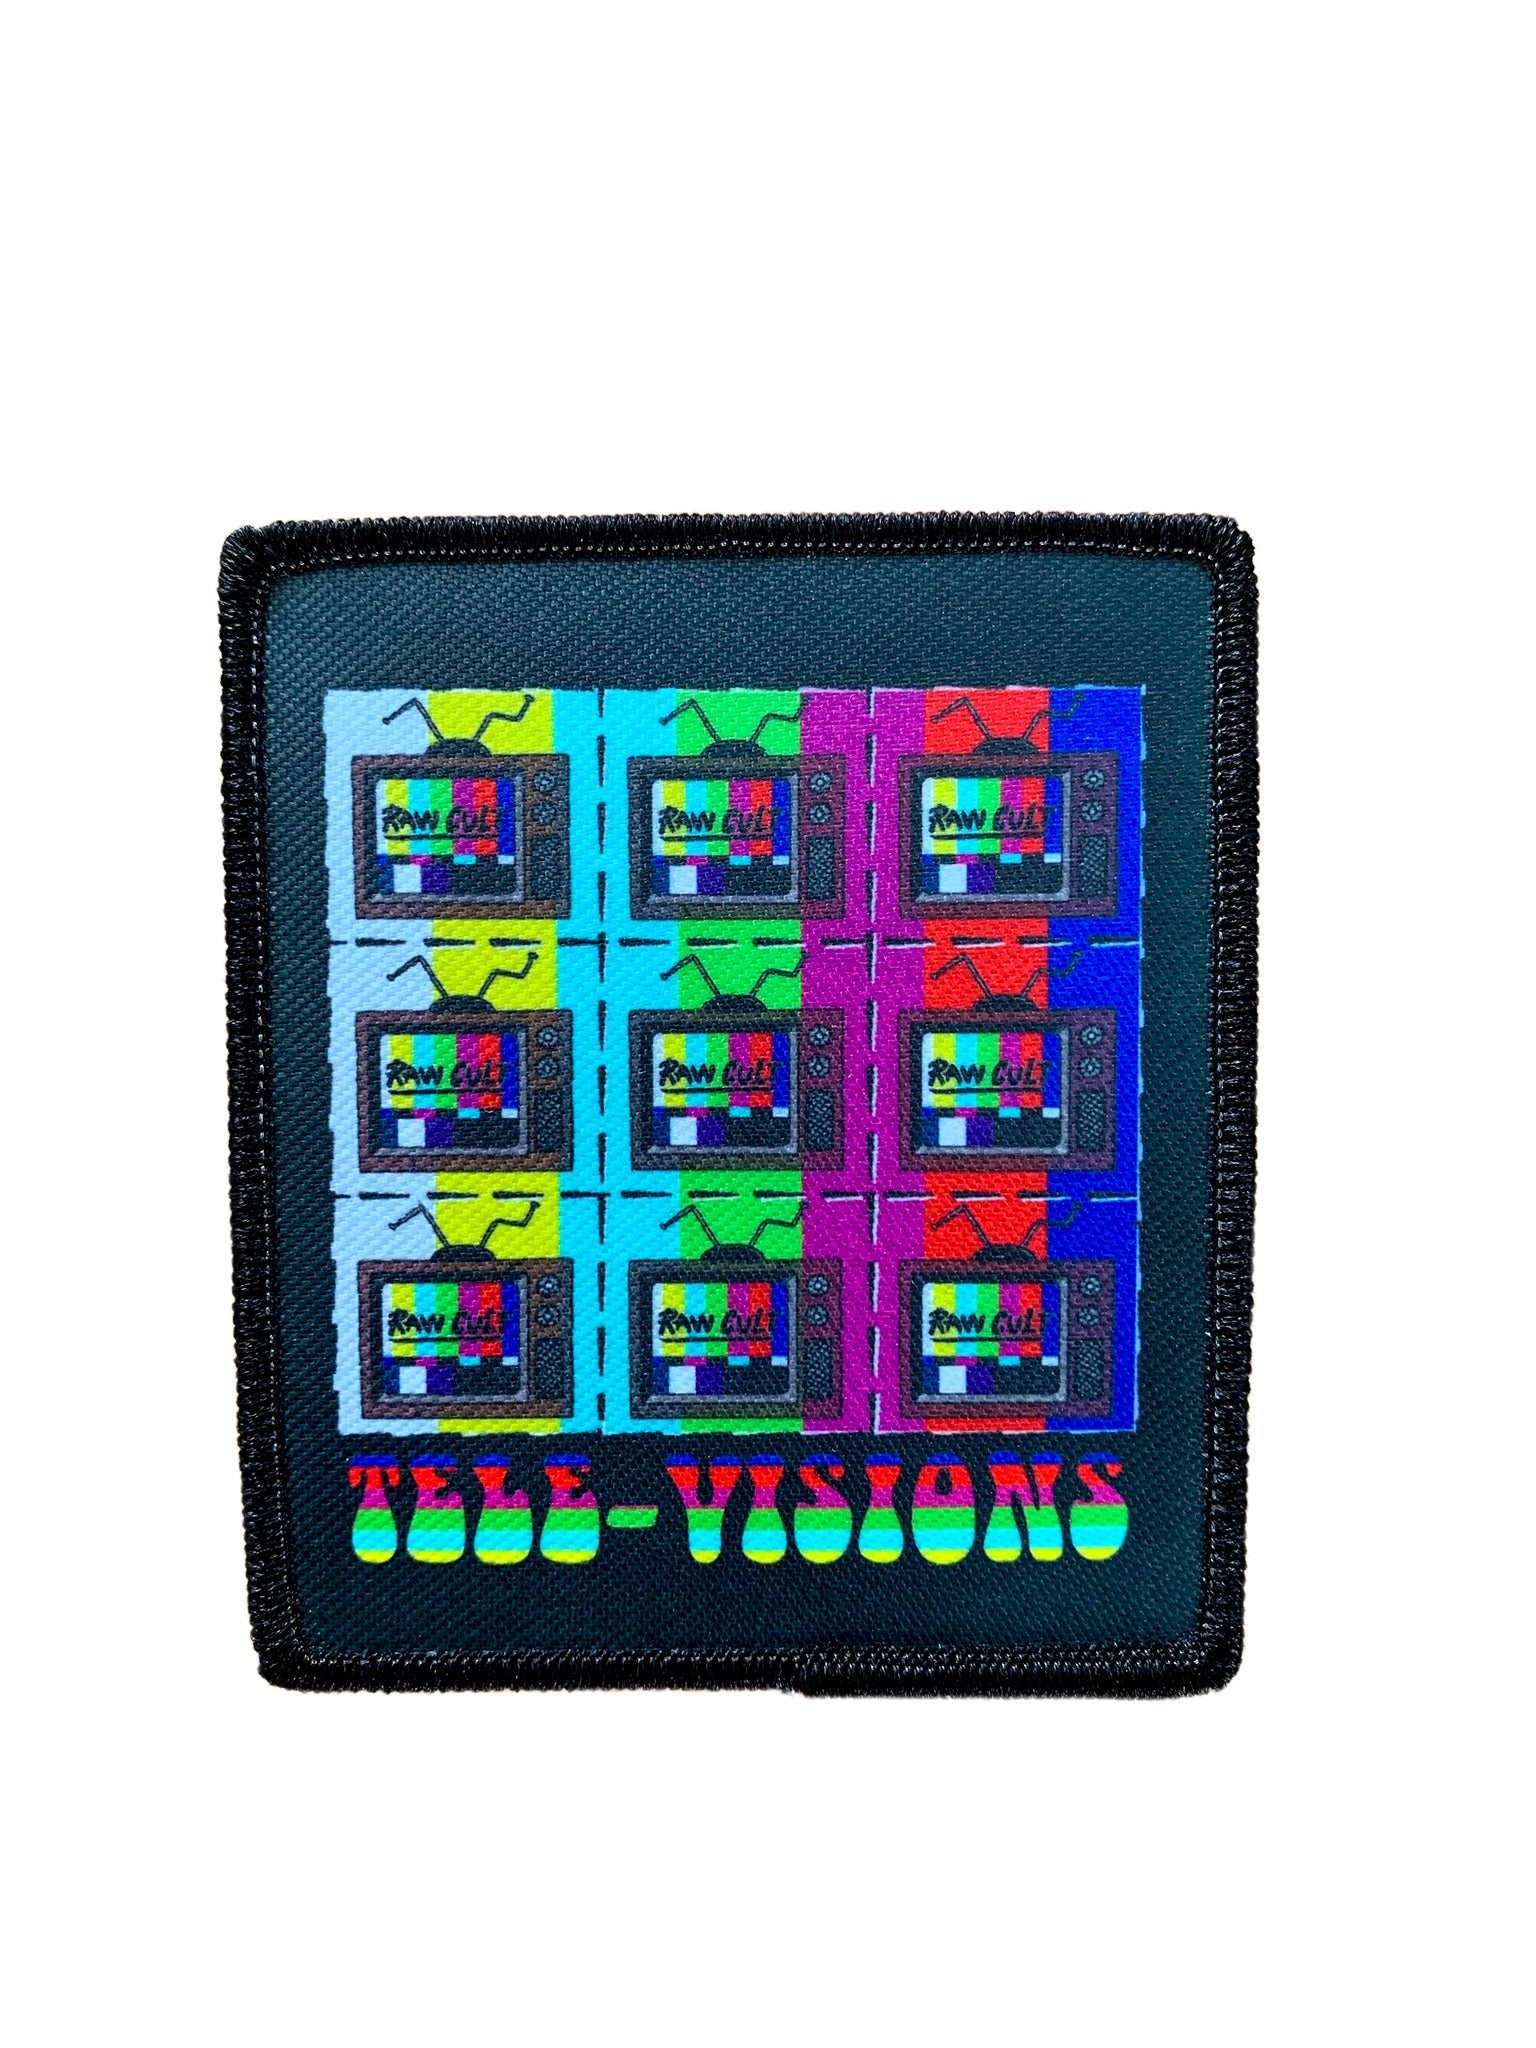 Tele-Visions LSD patch